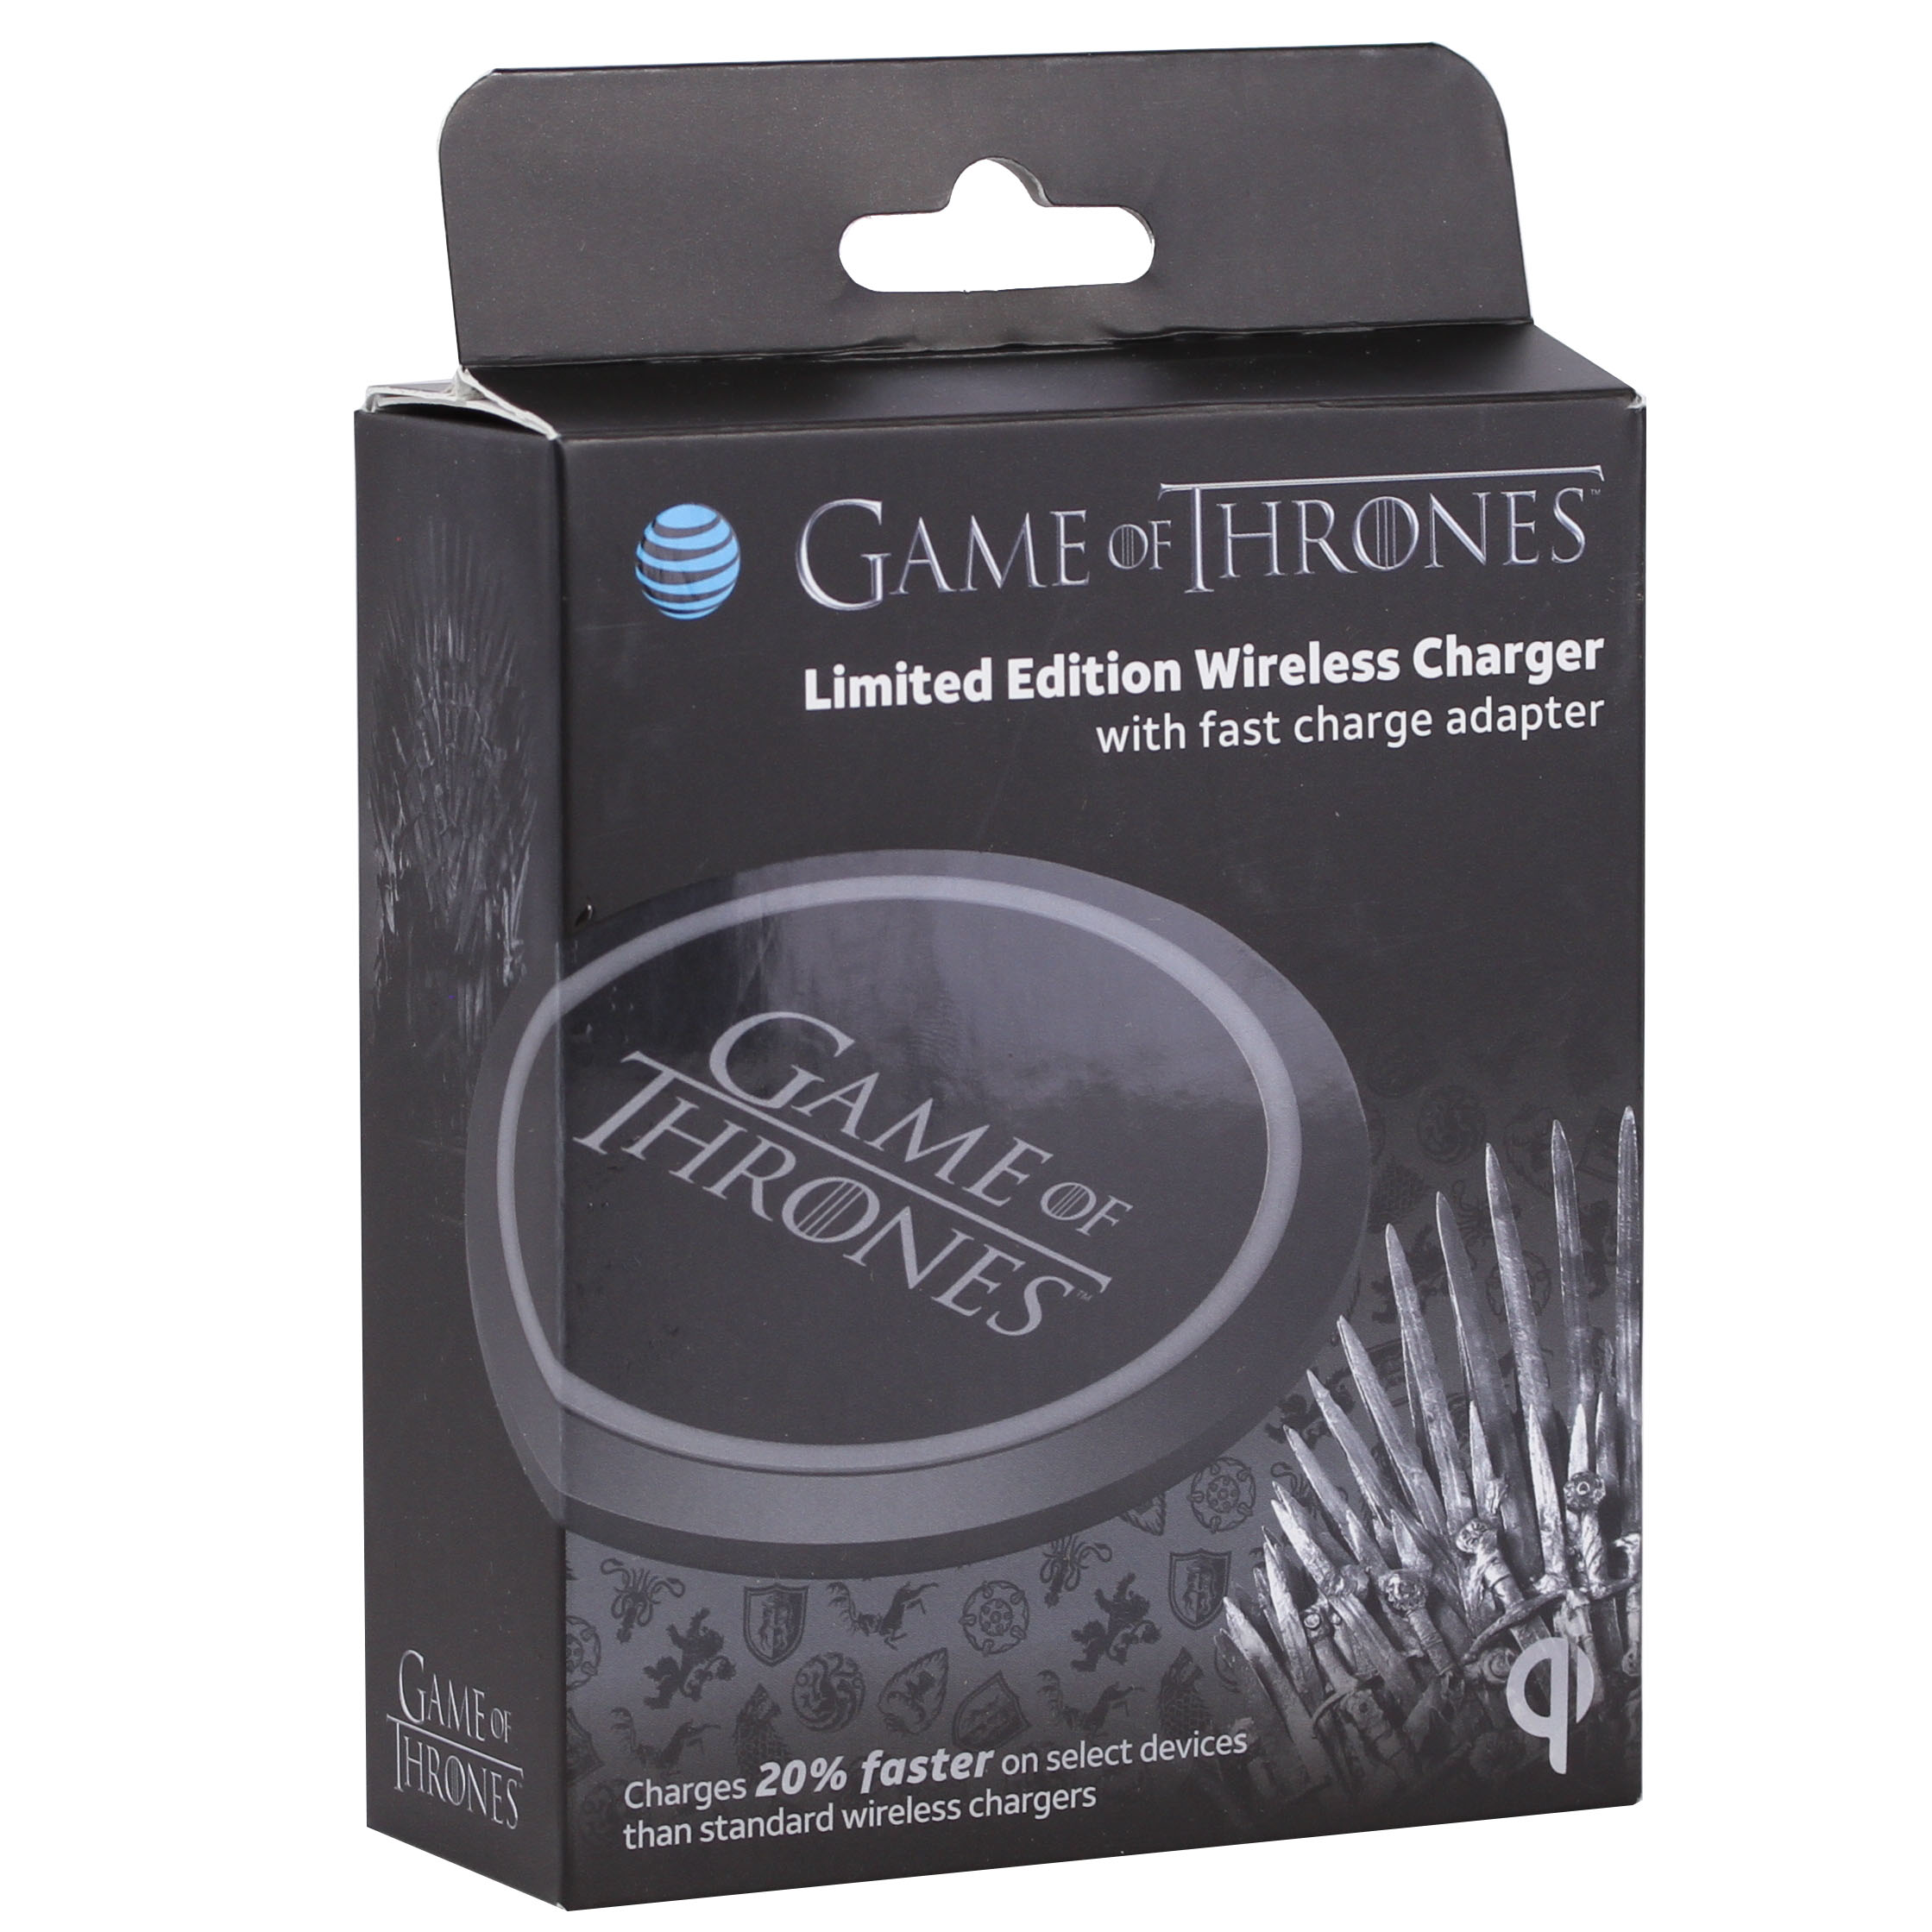 AT&T Game of Thrones Limited Edition Wireless Charger